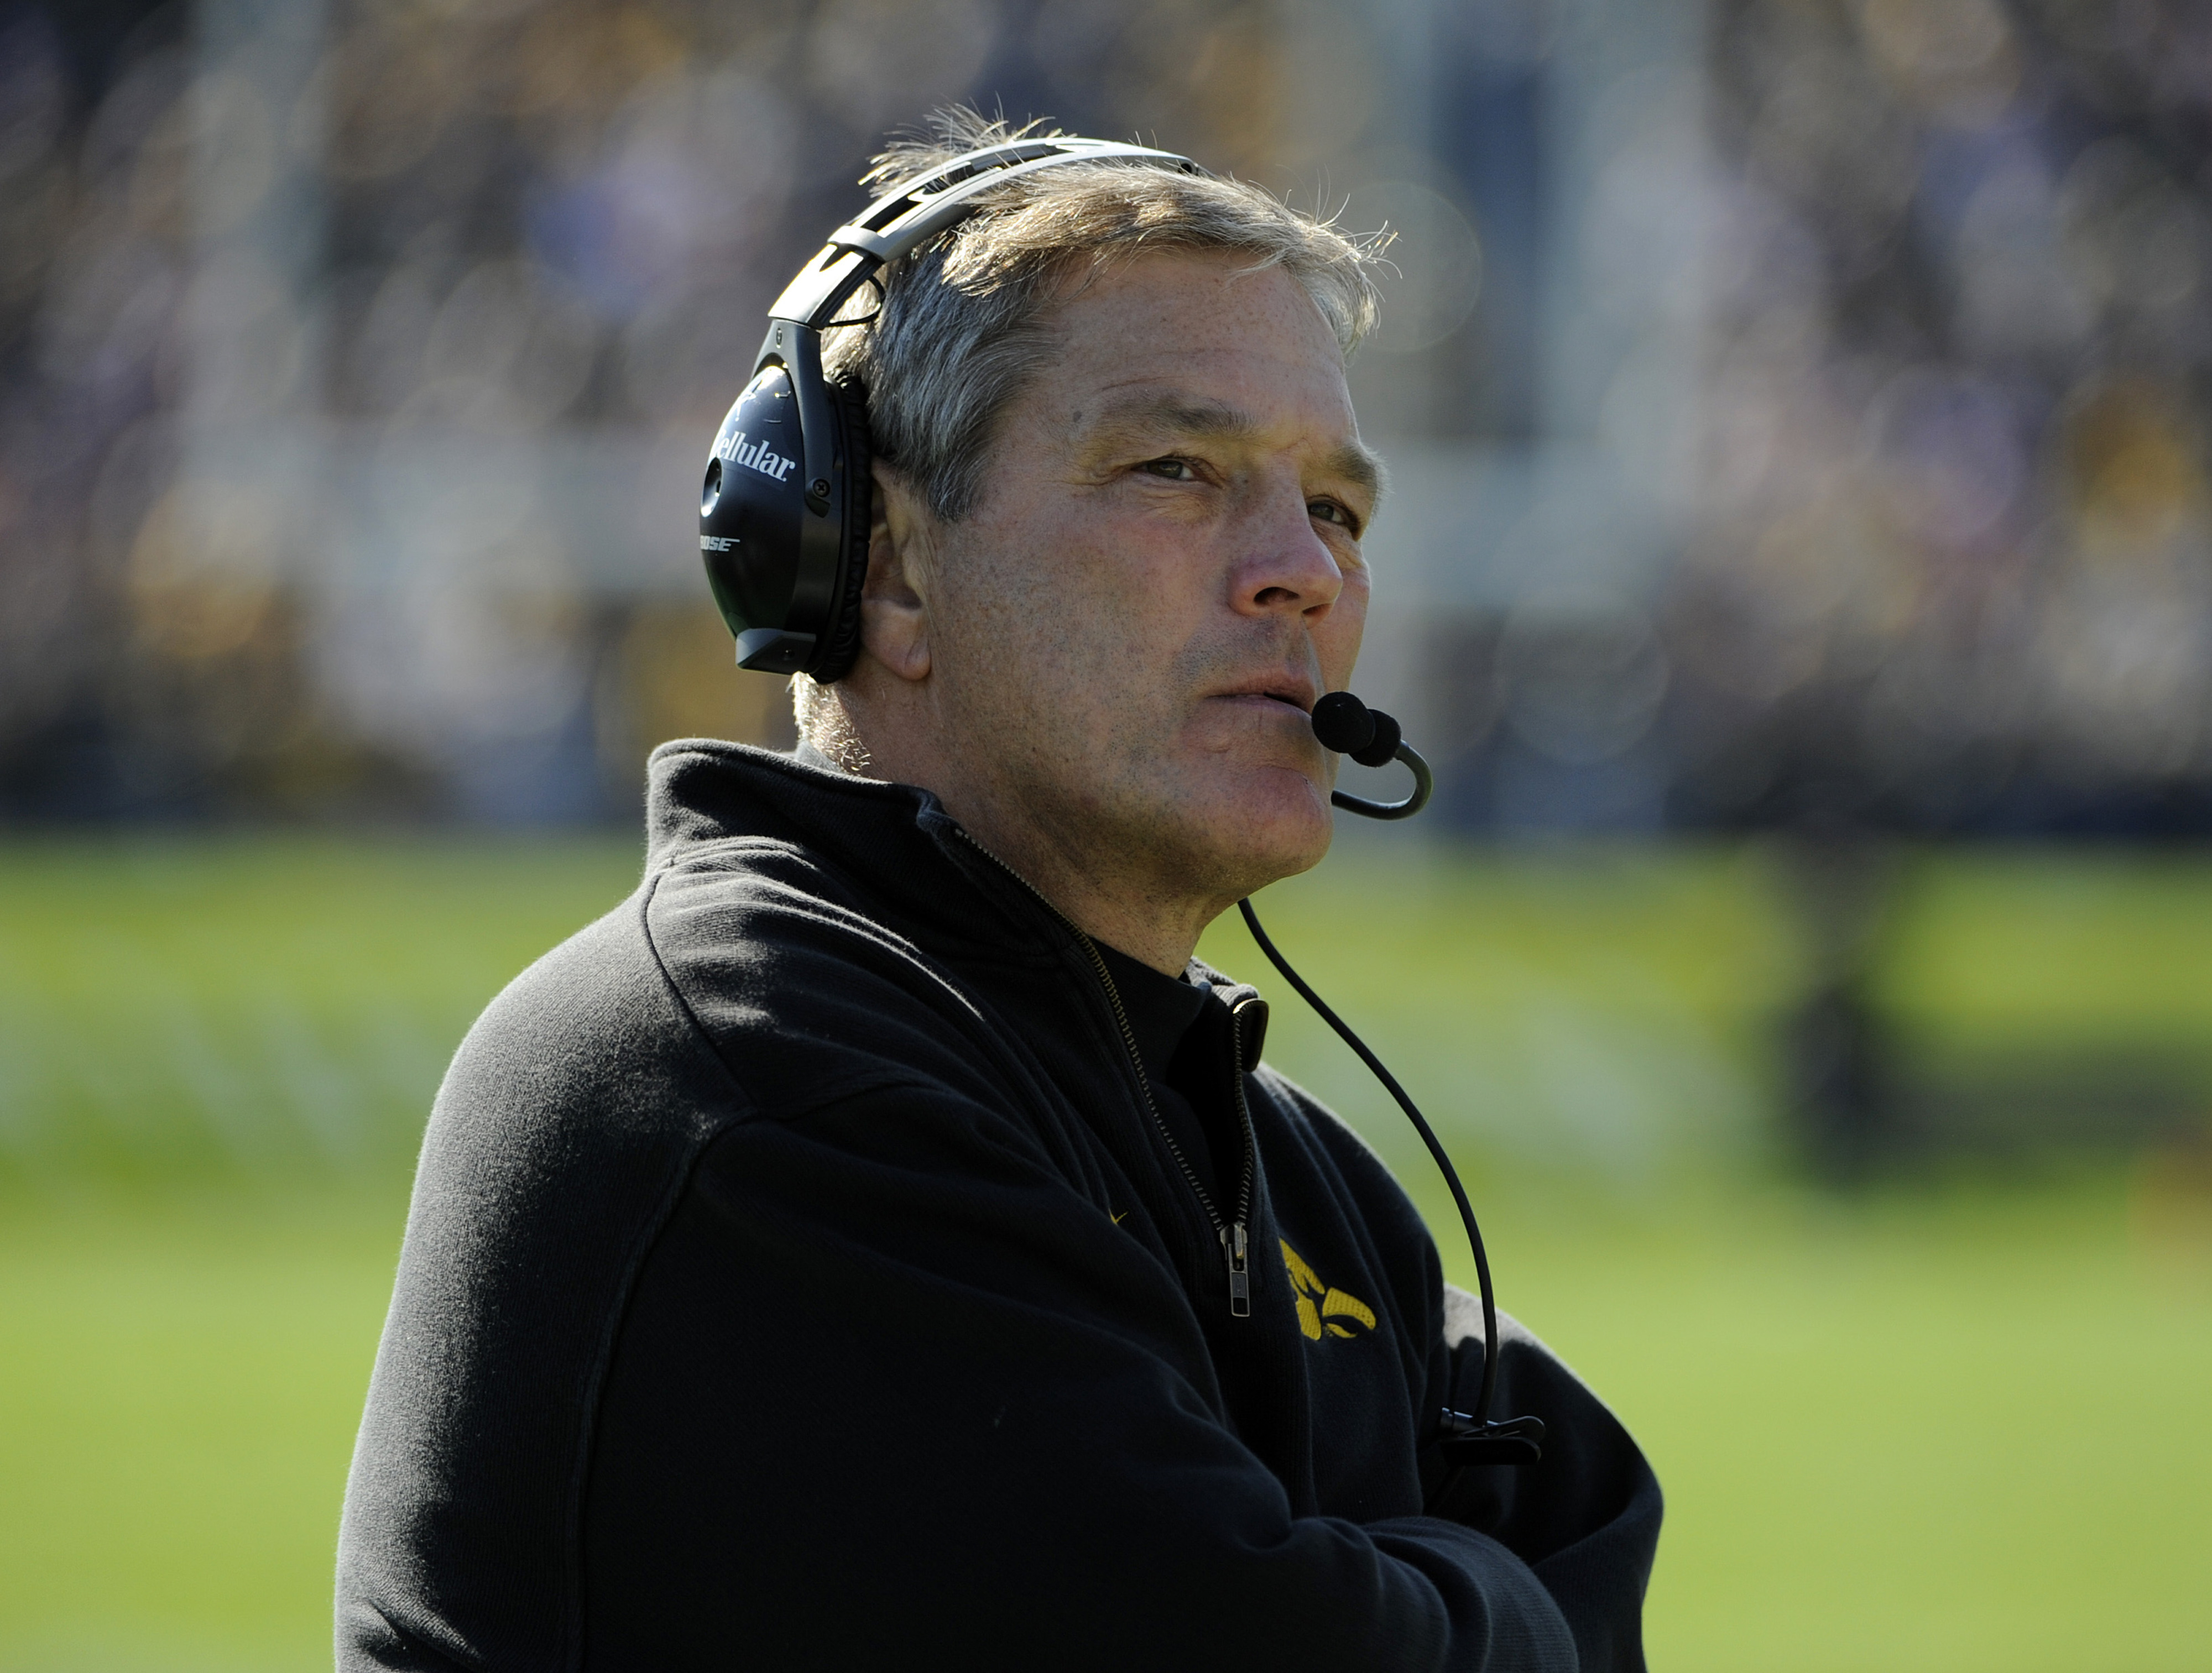 Iowa football and Kirk Ferentz are at a crossroads.